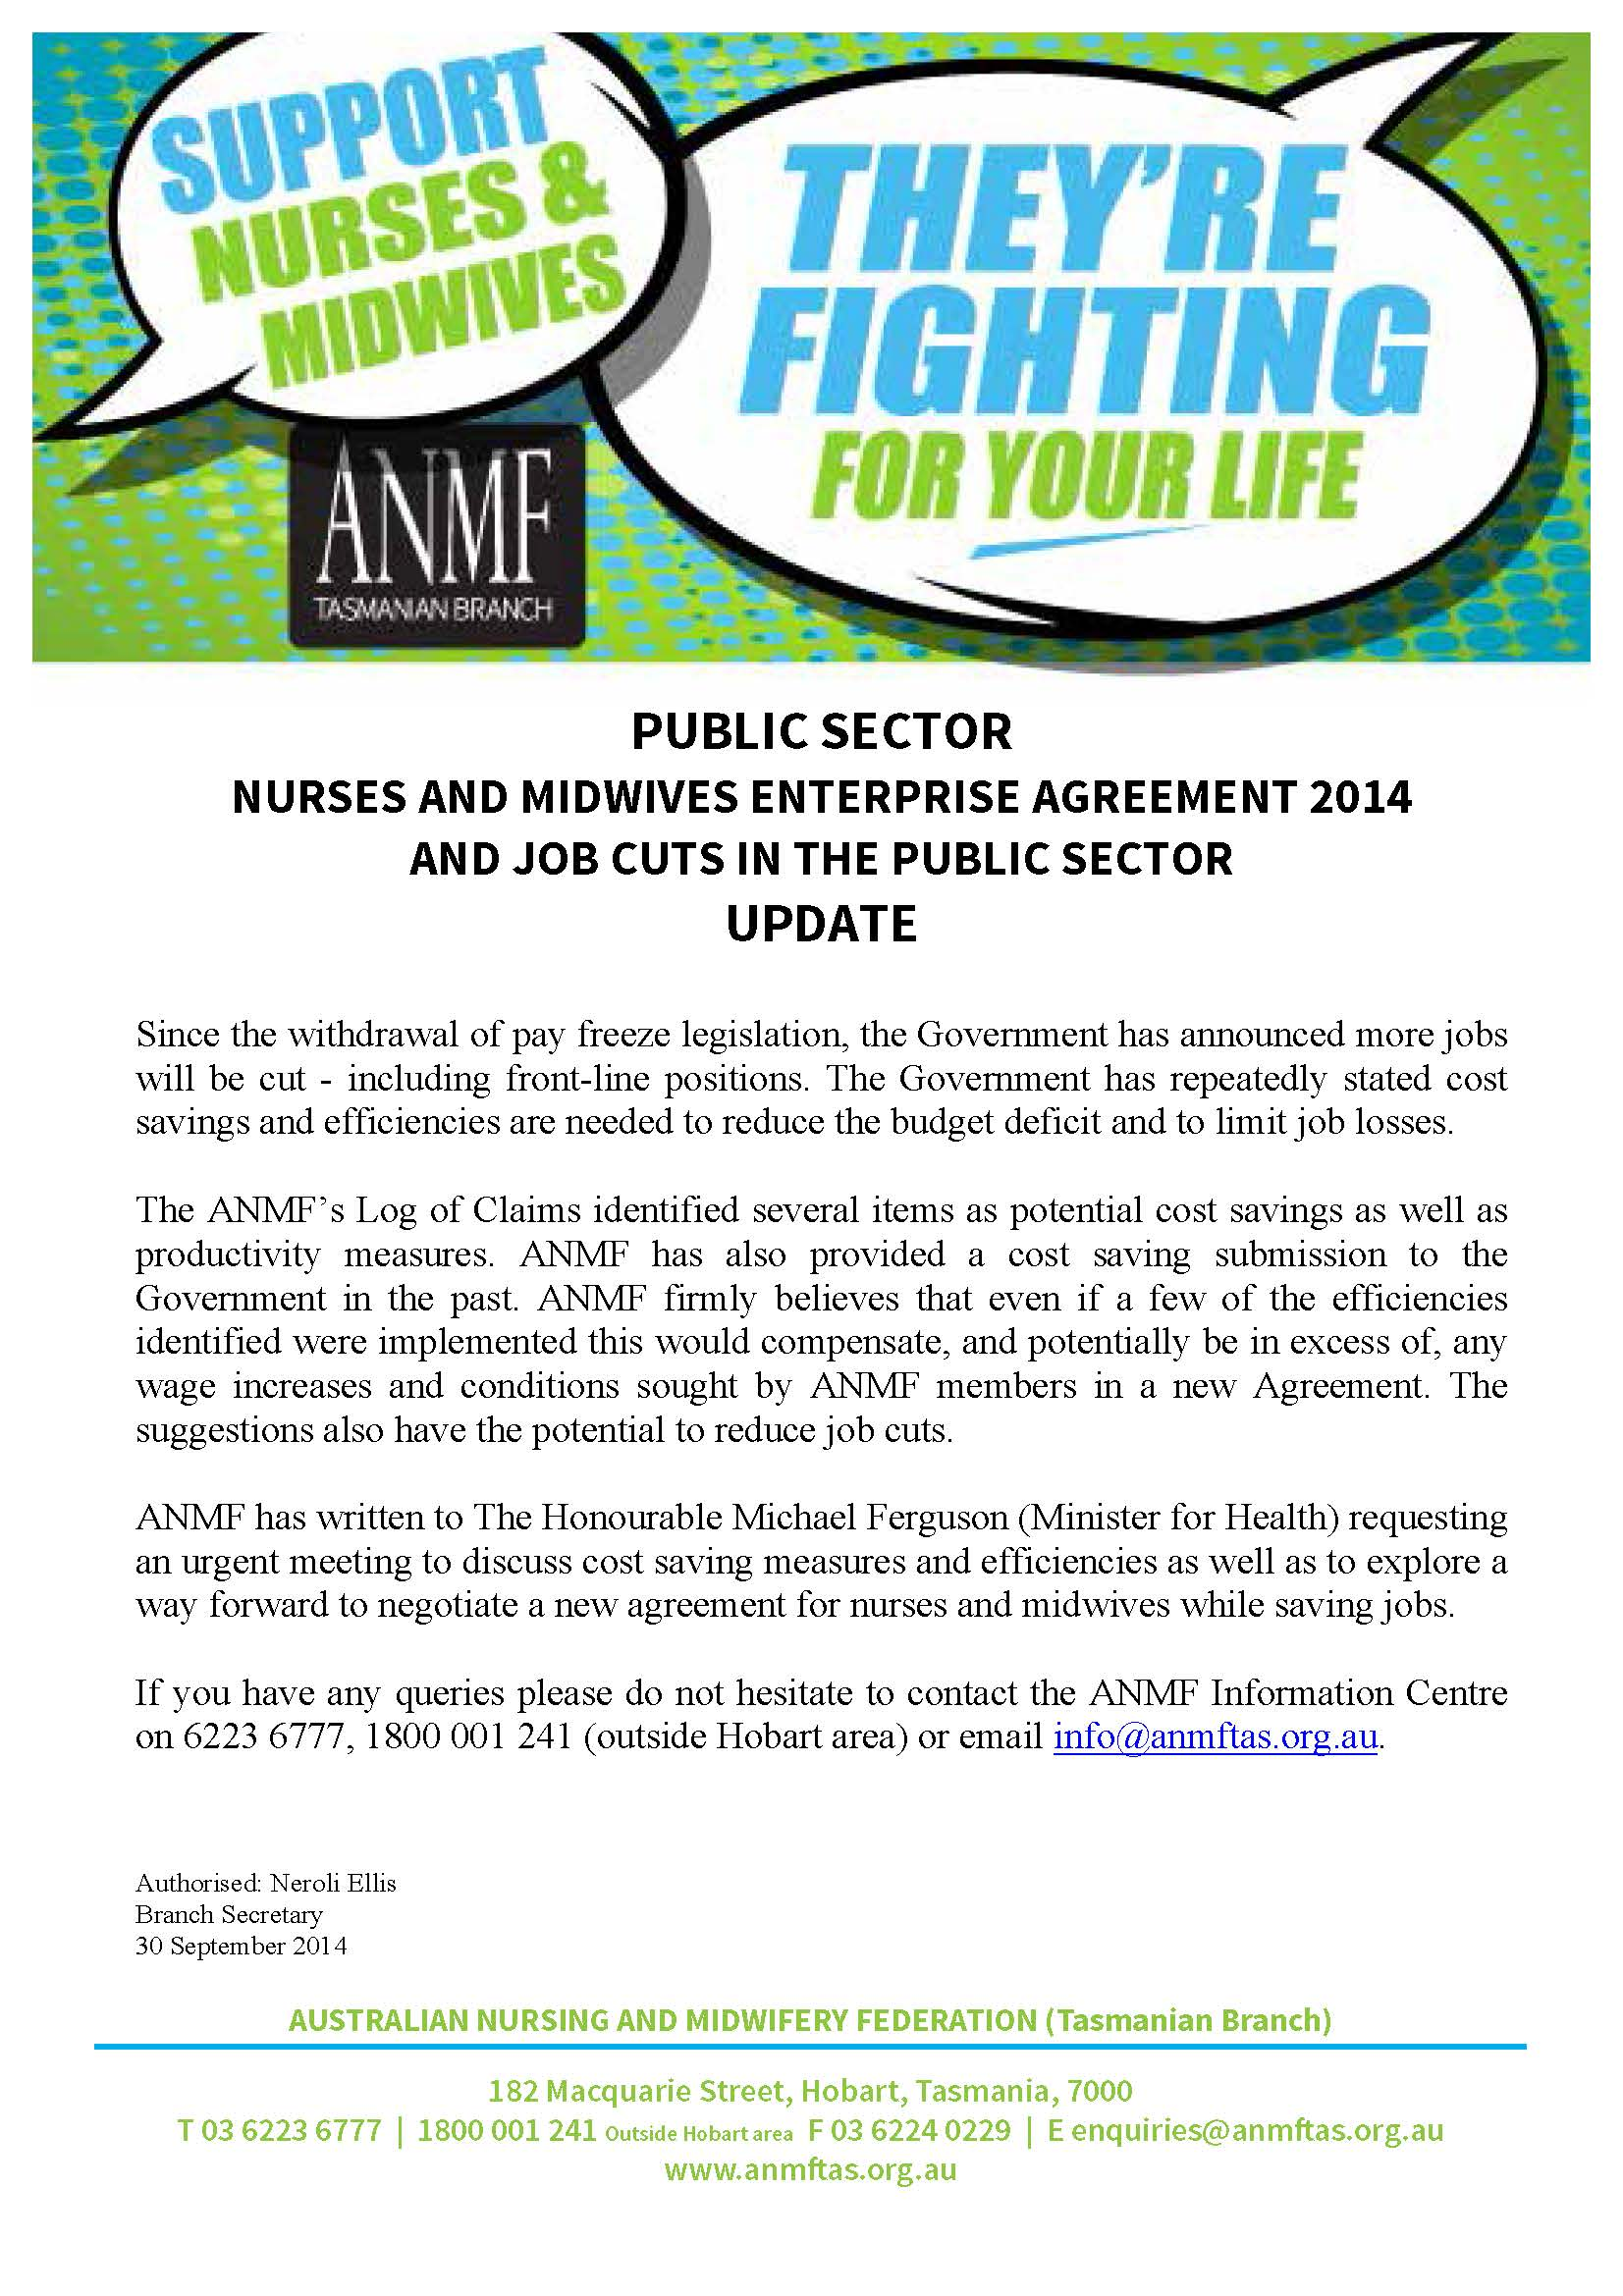 Nurses midwives enterprise agreement 2014 and job cuts in the 20140930 nurses and midwives ea 2014 update flier1 platinumwayz